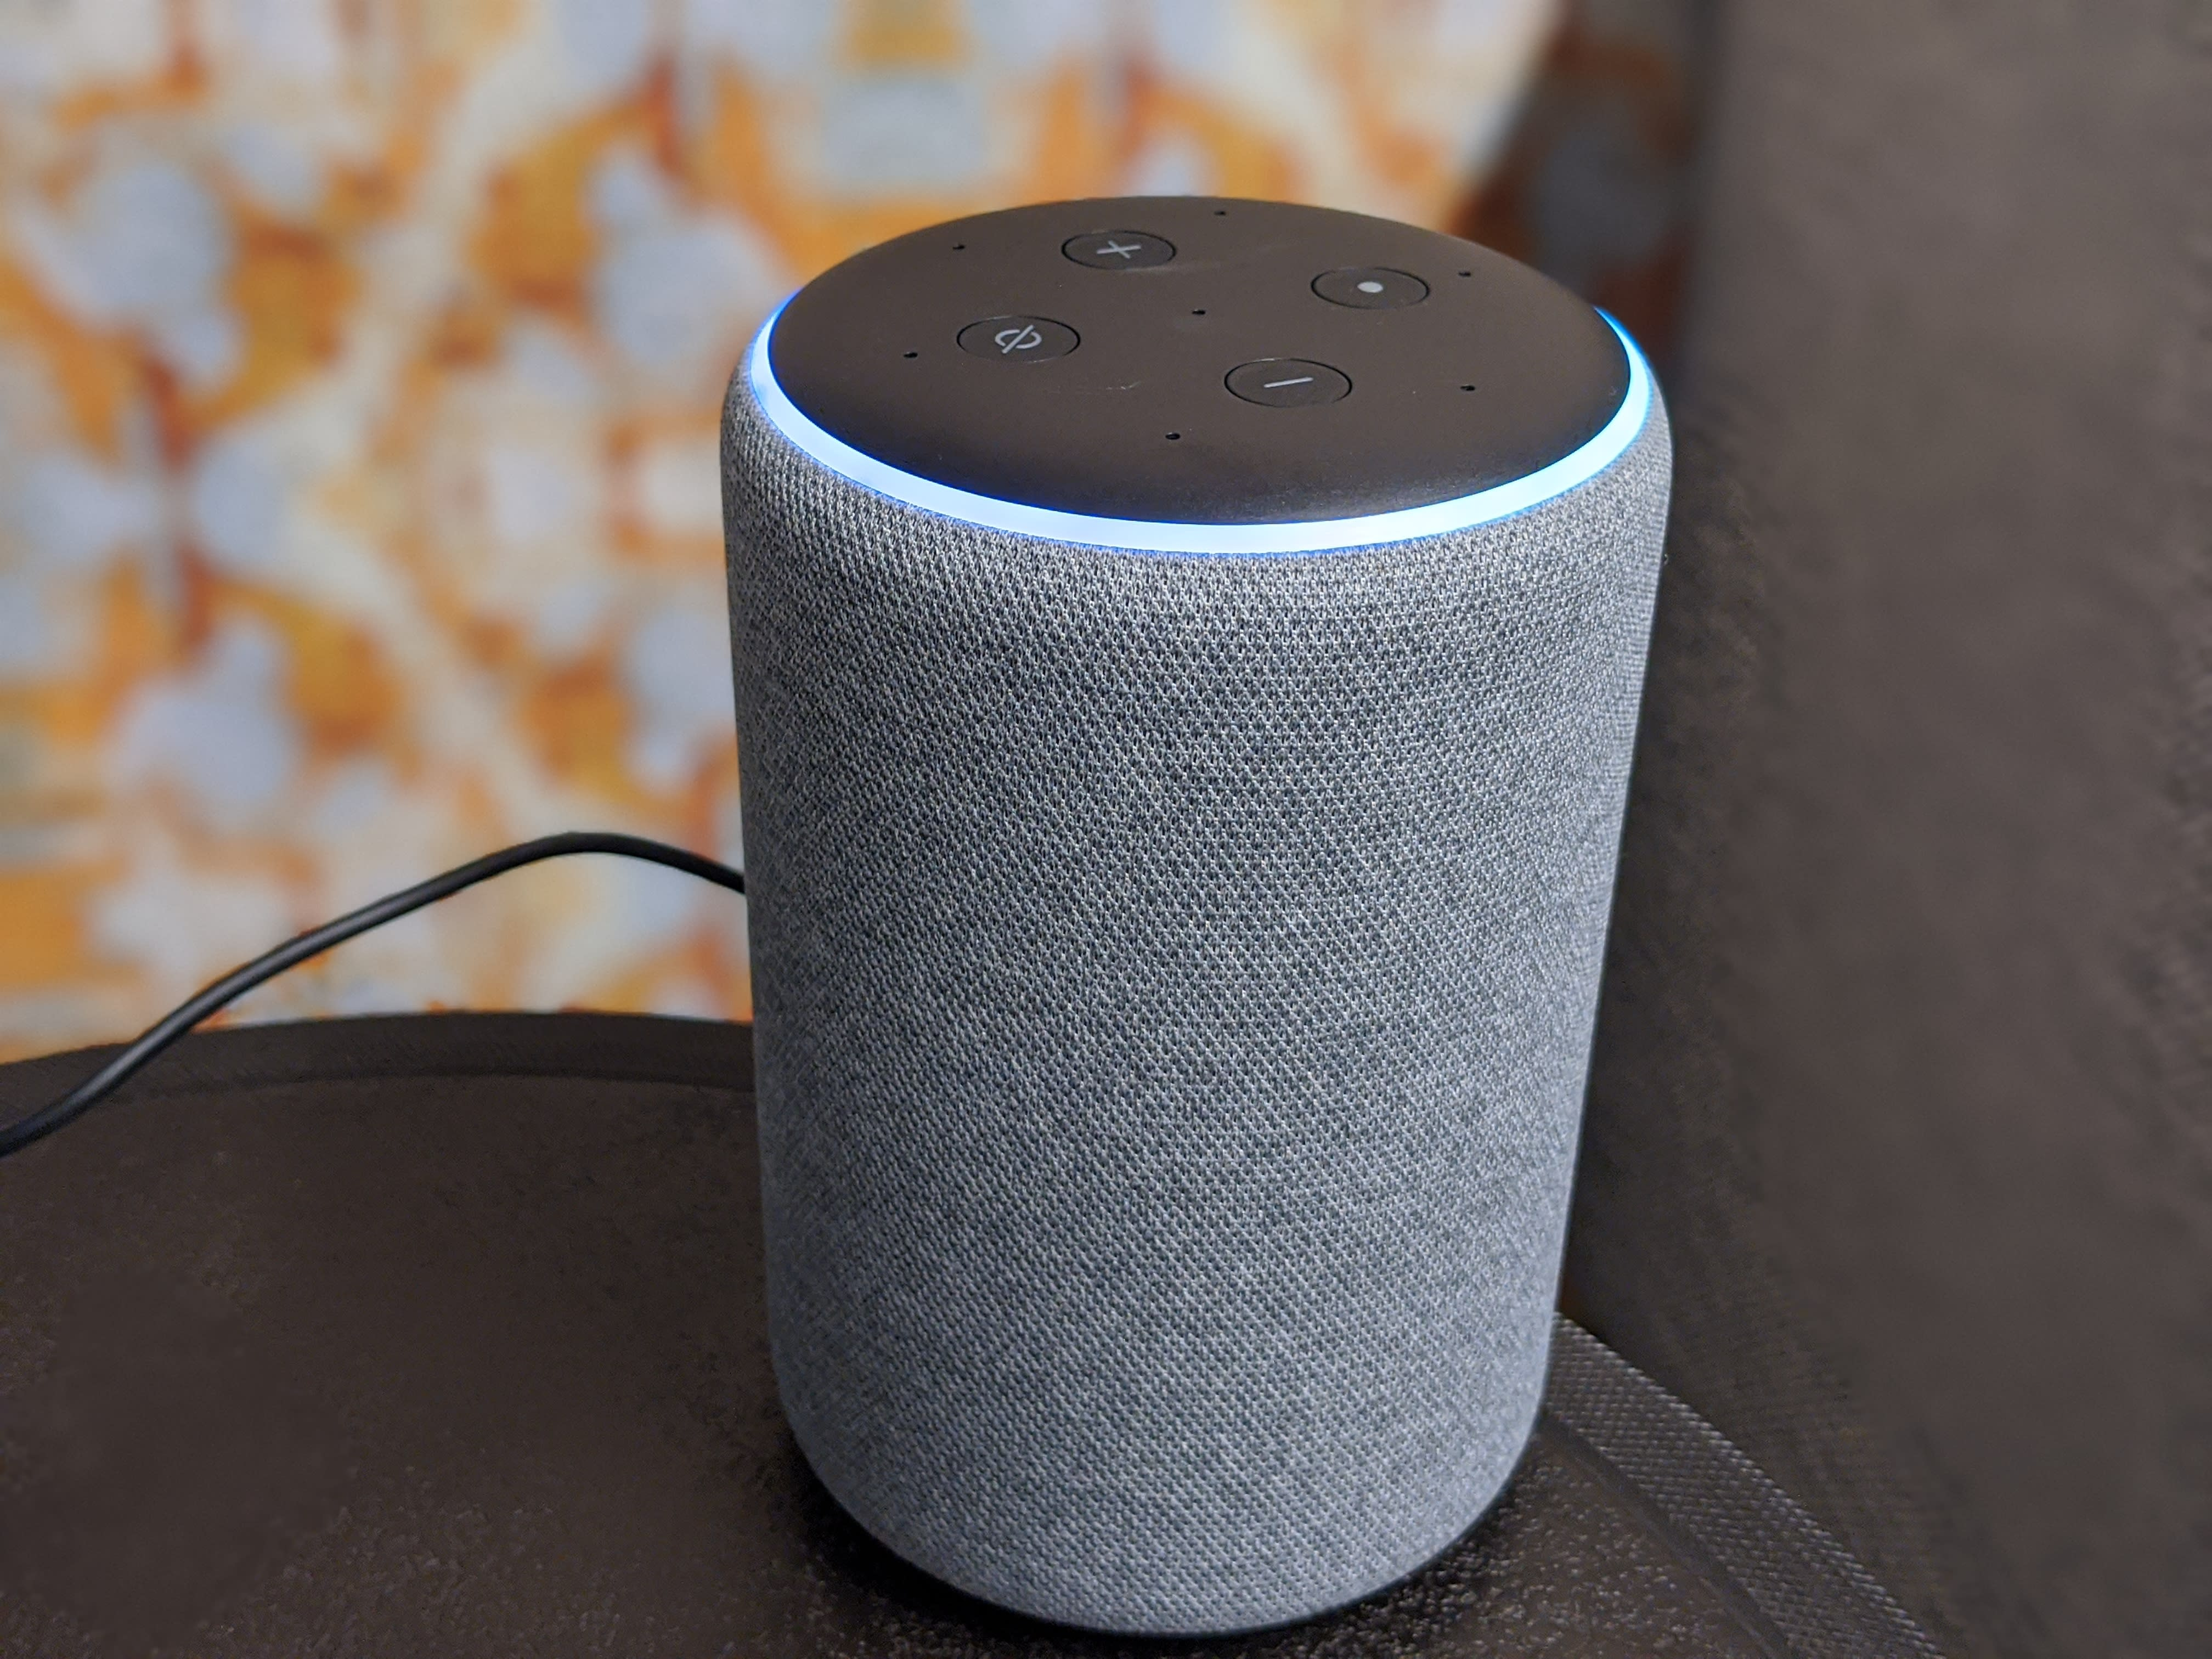 Amazon Alexa will now sound excited or even disappointed